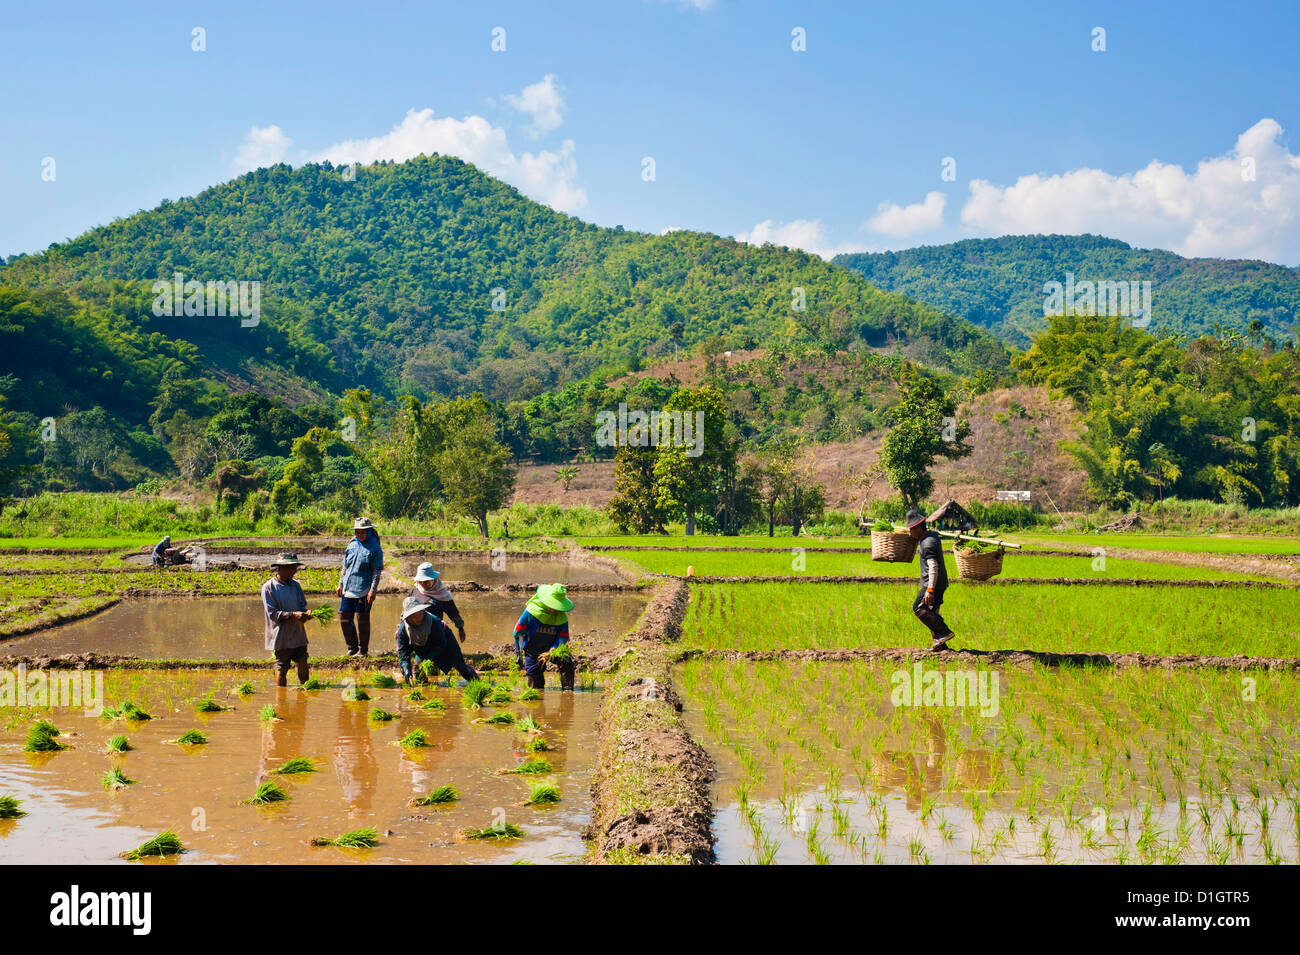 Lahu tribe people planting rice in rice paddy fields, Chiang Rai, Thailand, Southeast Asia, Asia - Stock Image